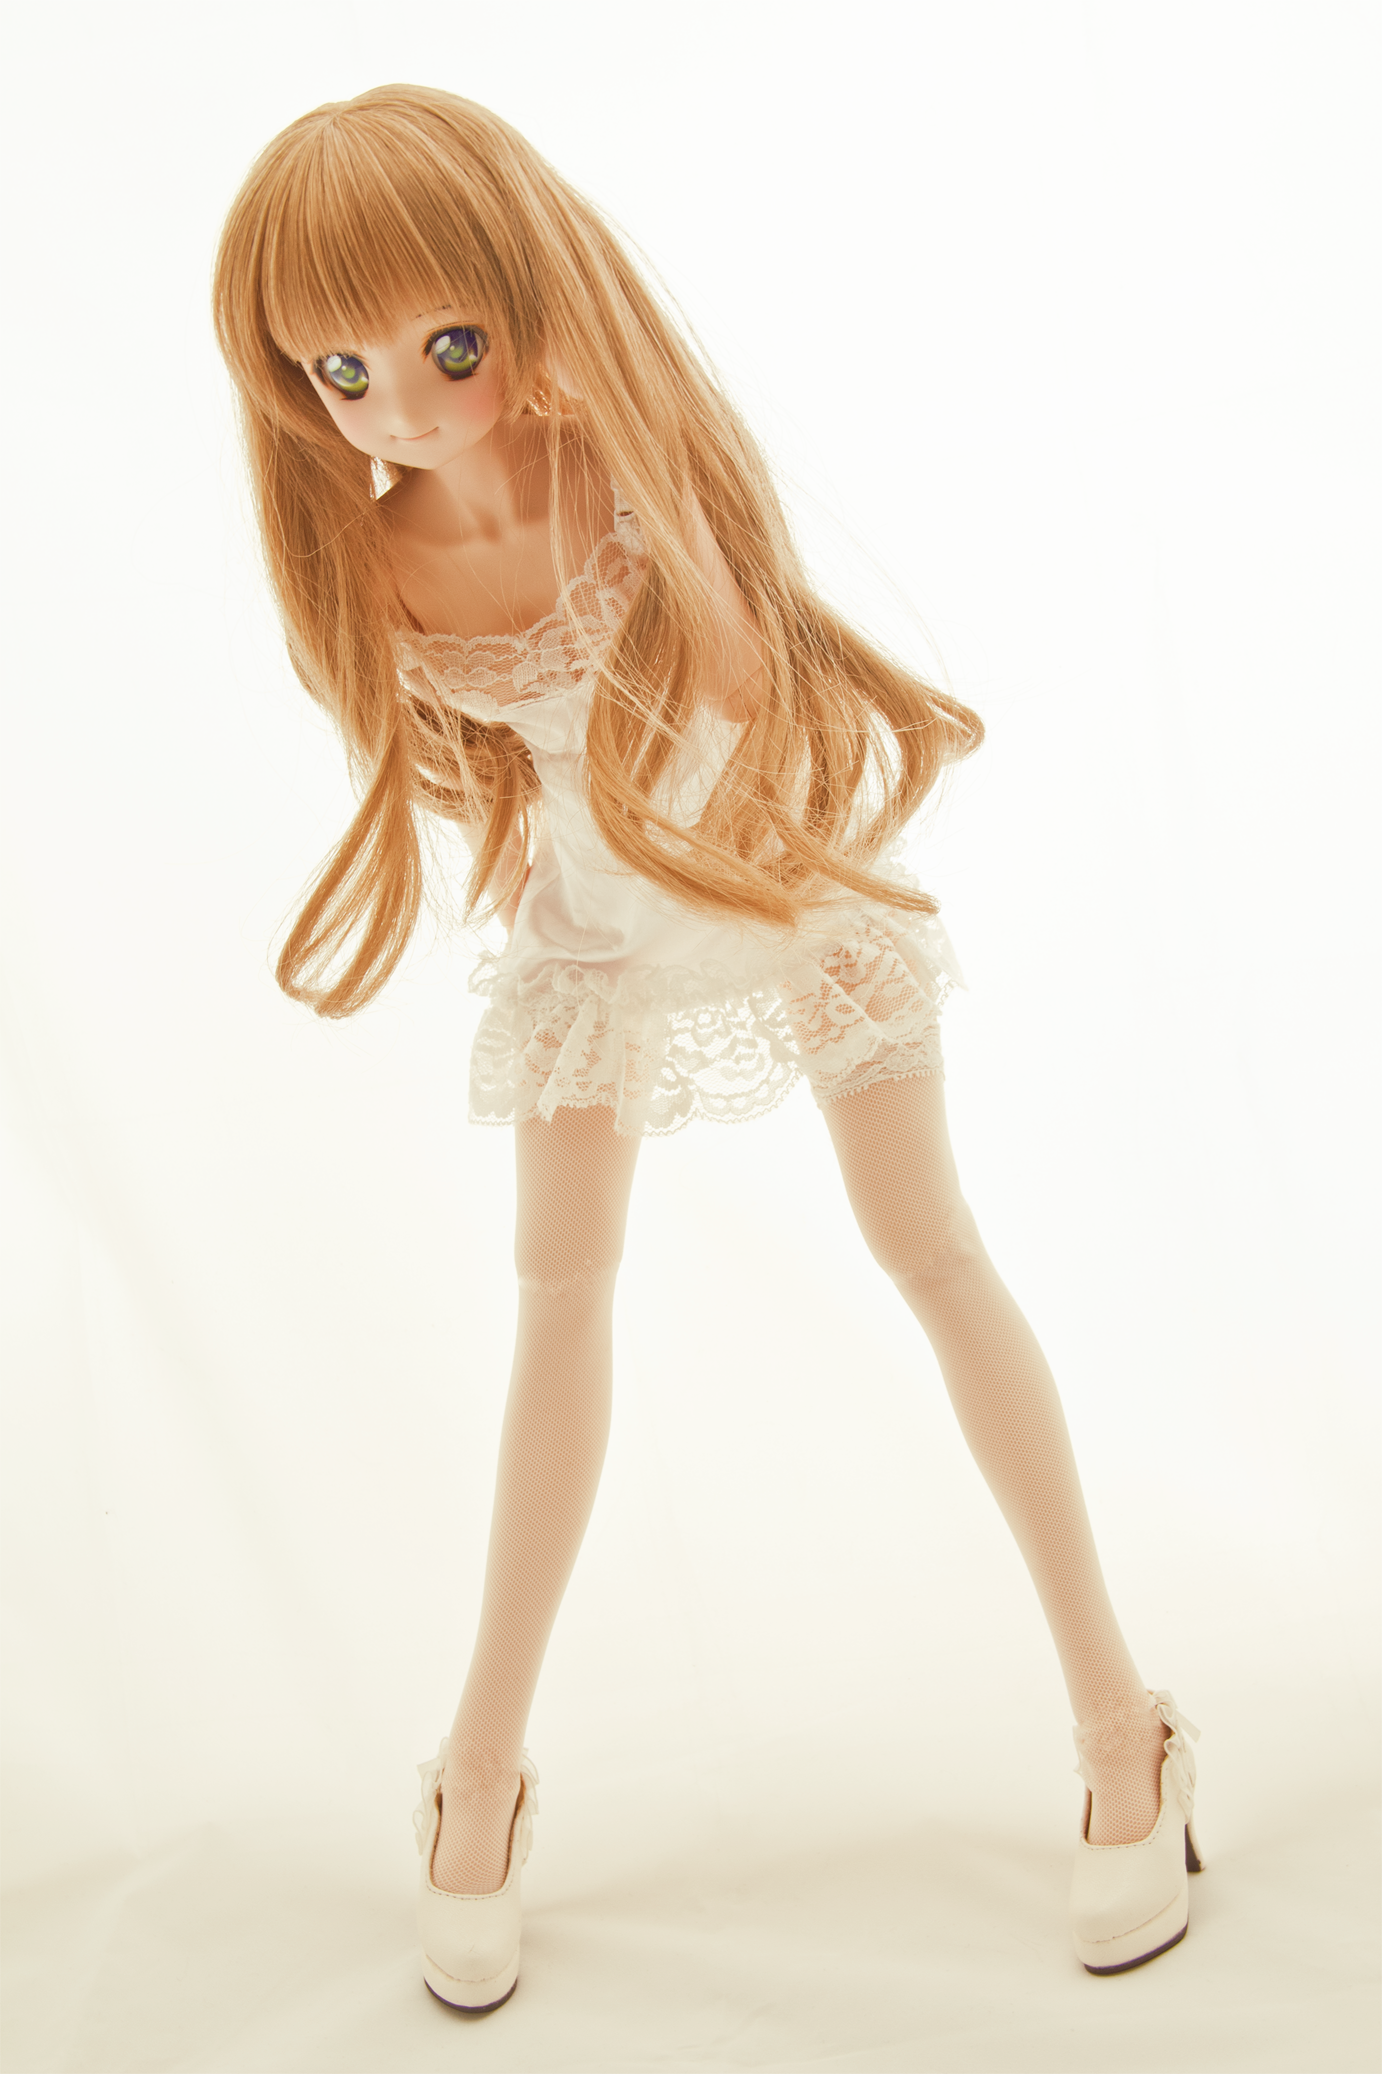 volks dollfie_dream mayu dollfie_dream_sister zoukei-mura image_character